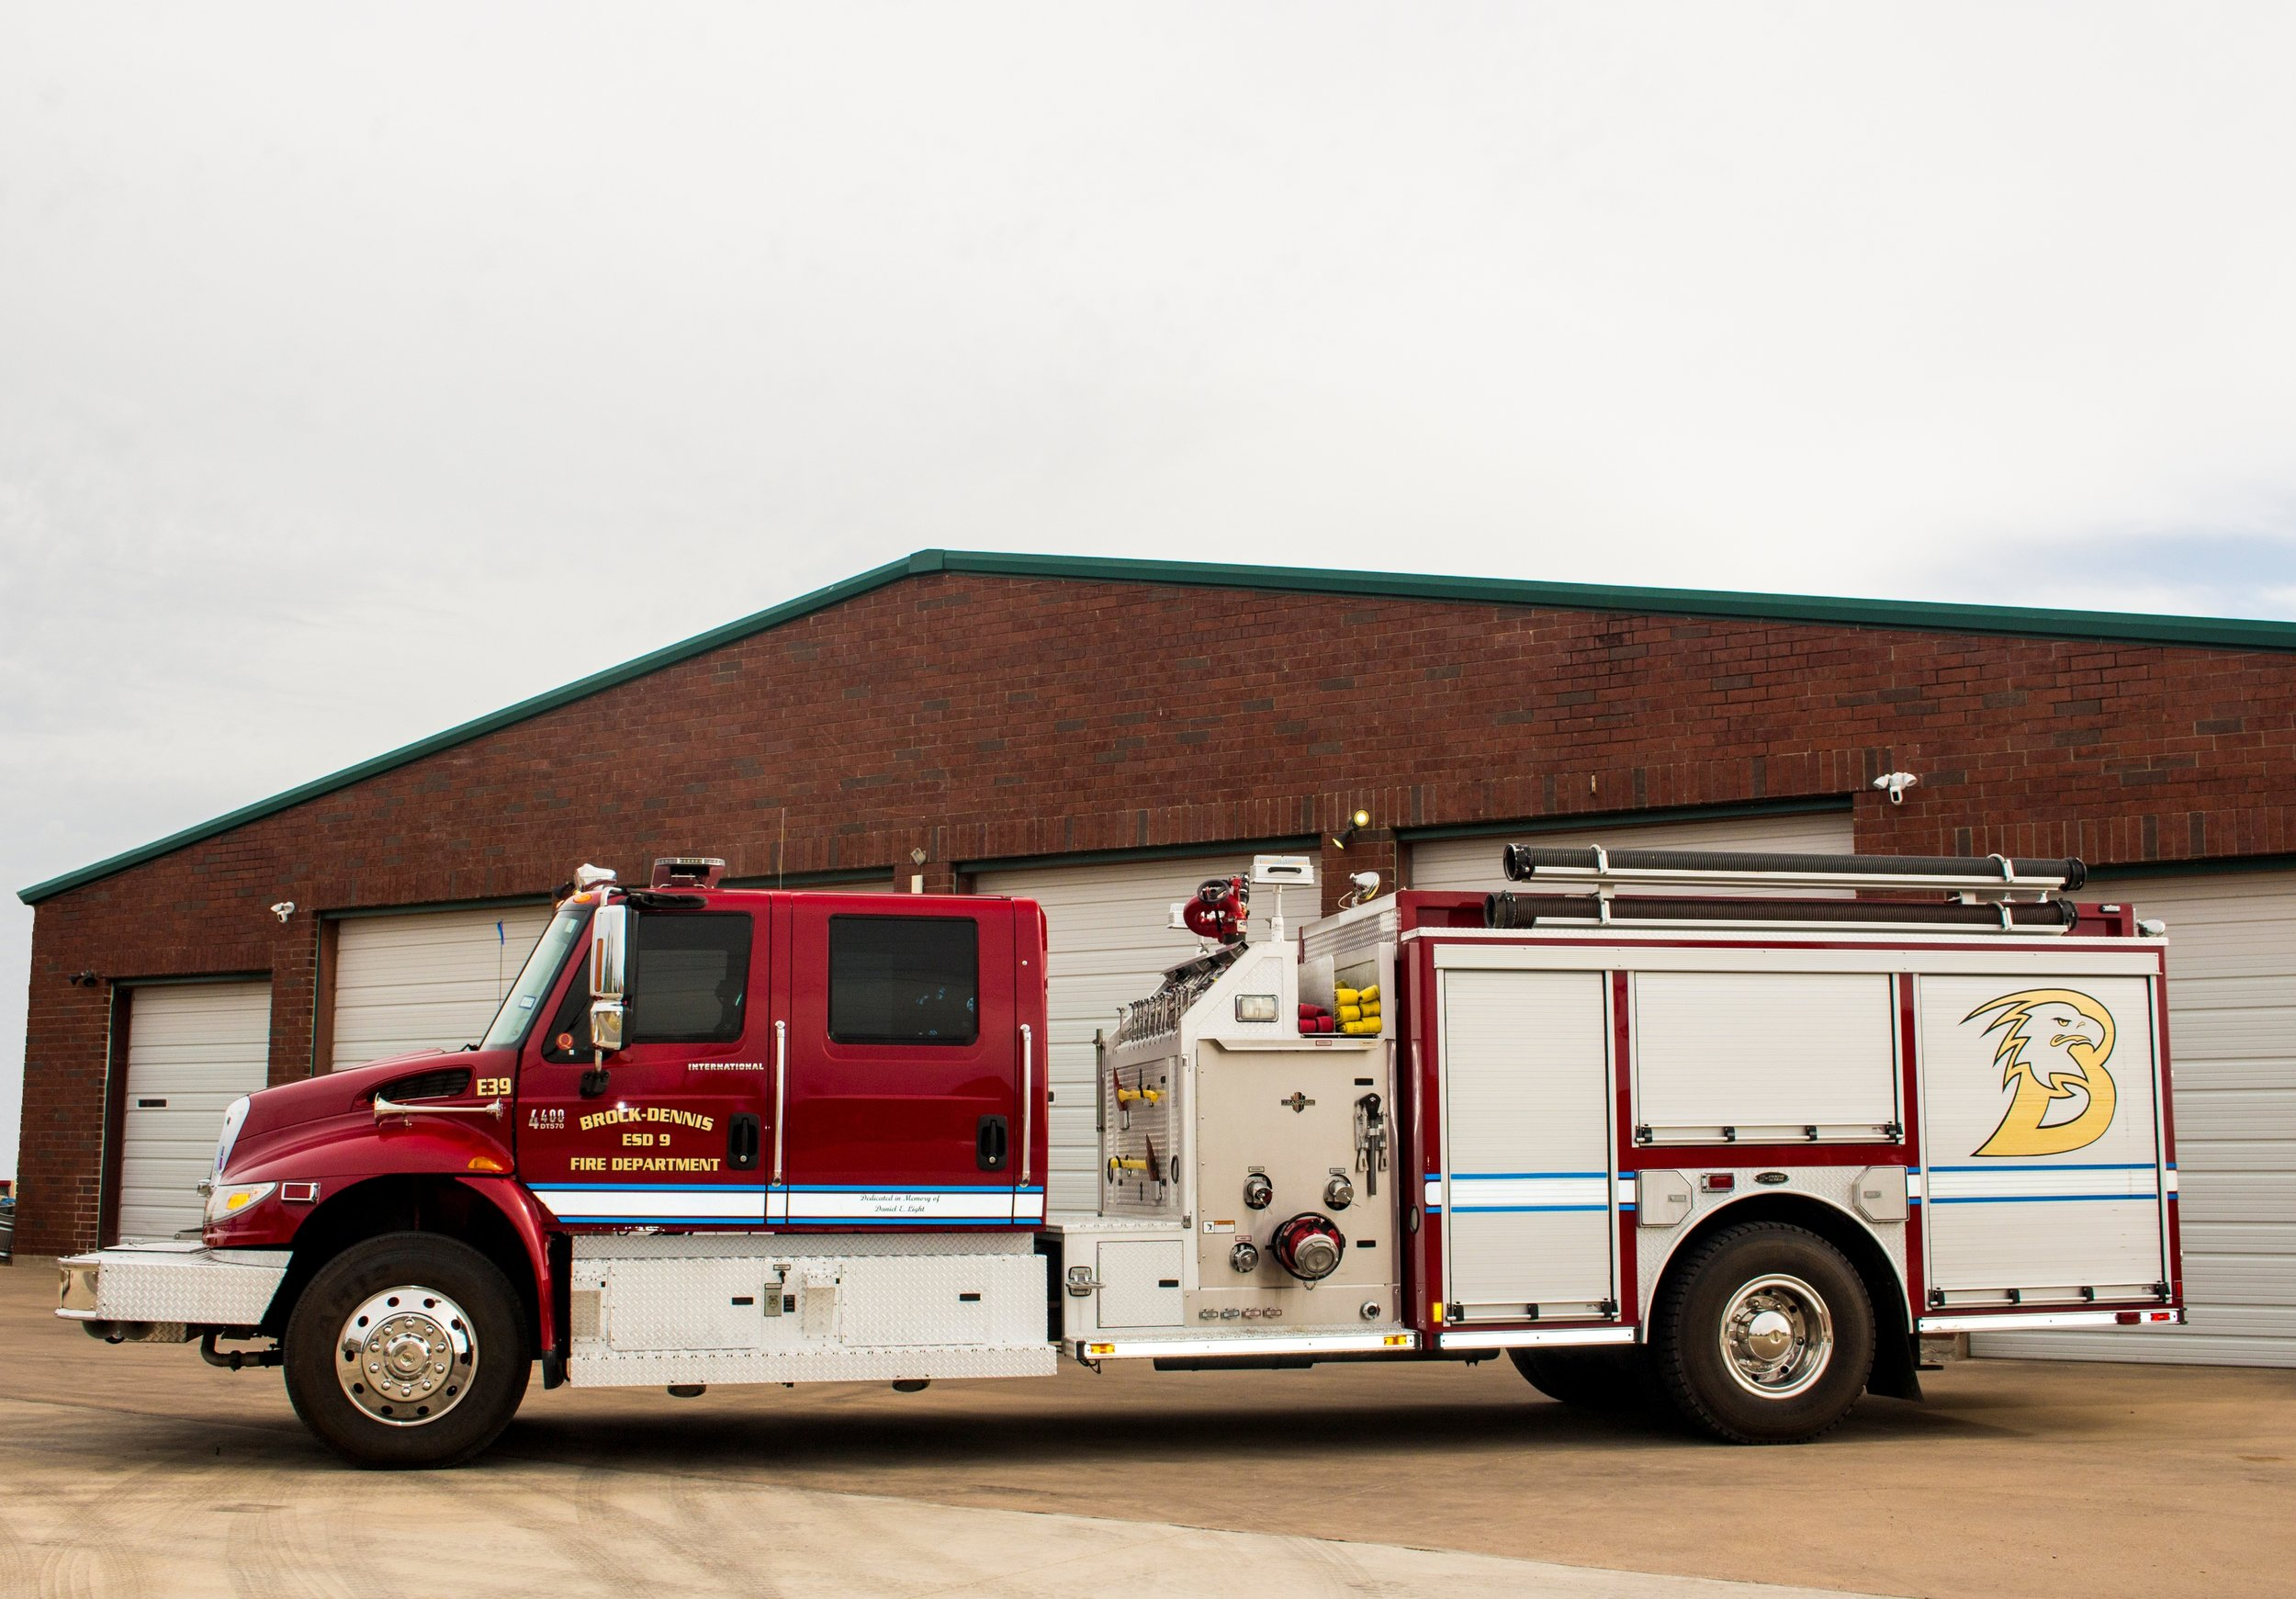 E39 - Stationed at Station 2 is our 2006 International built by E-One. This truck has been our department's work-horse since 2006. It features a 1000 Gallon Tank and a 1700 GPM pump while still carrying 5 firefighters.